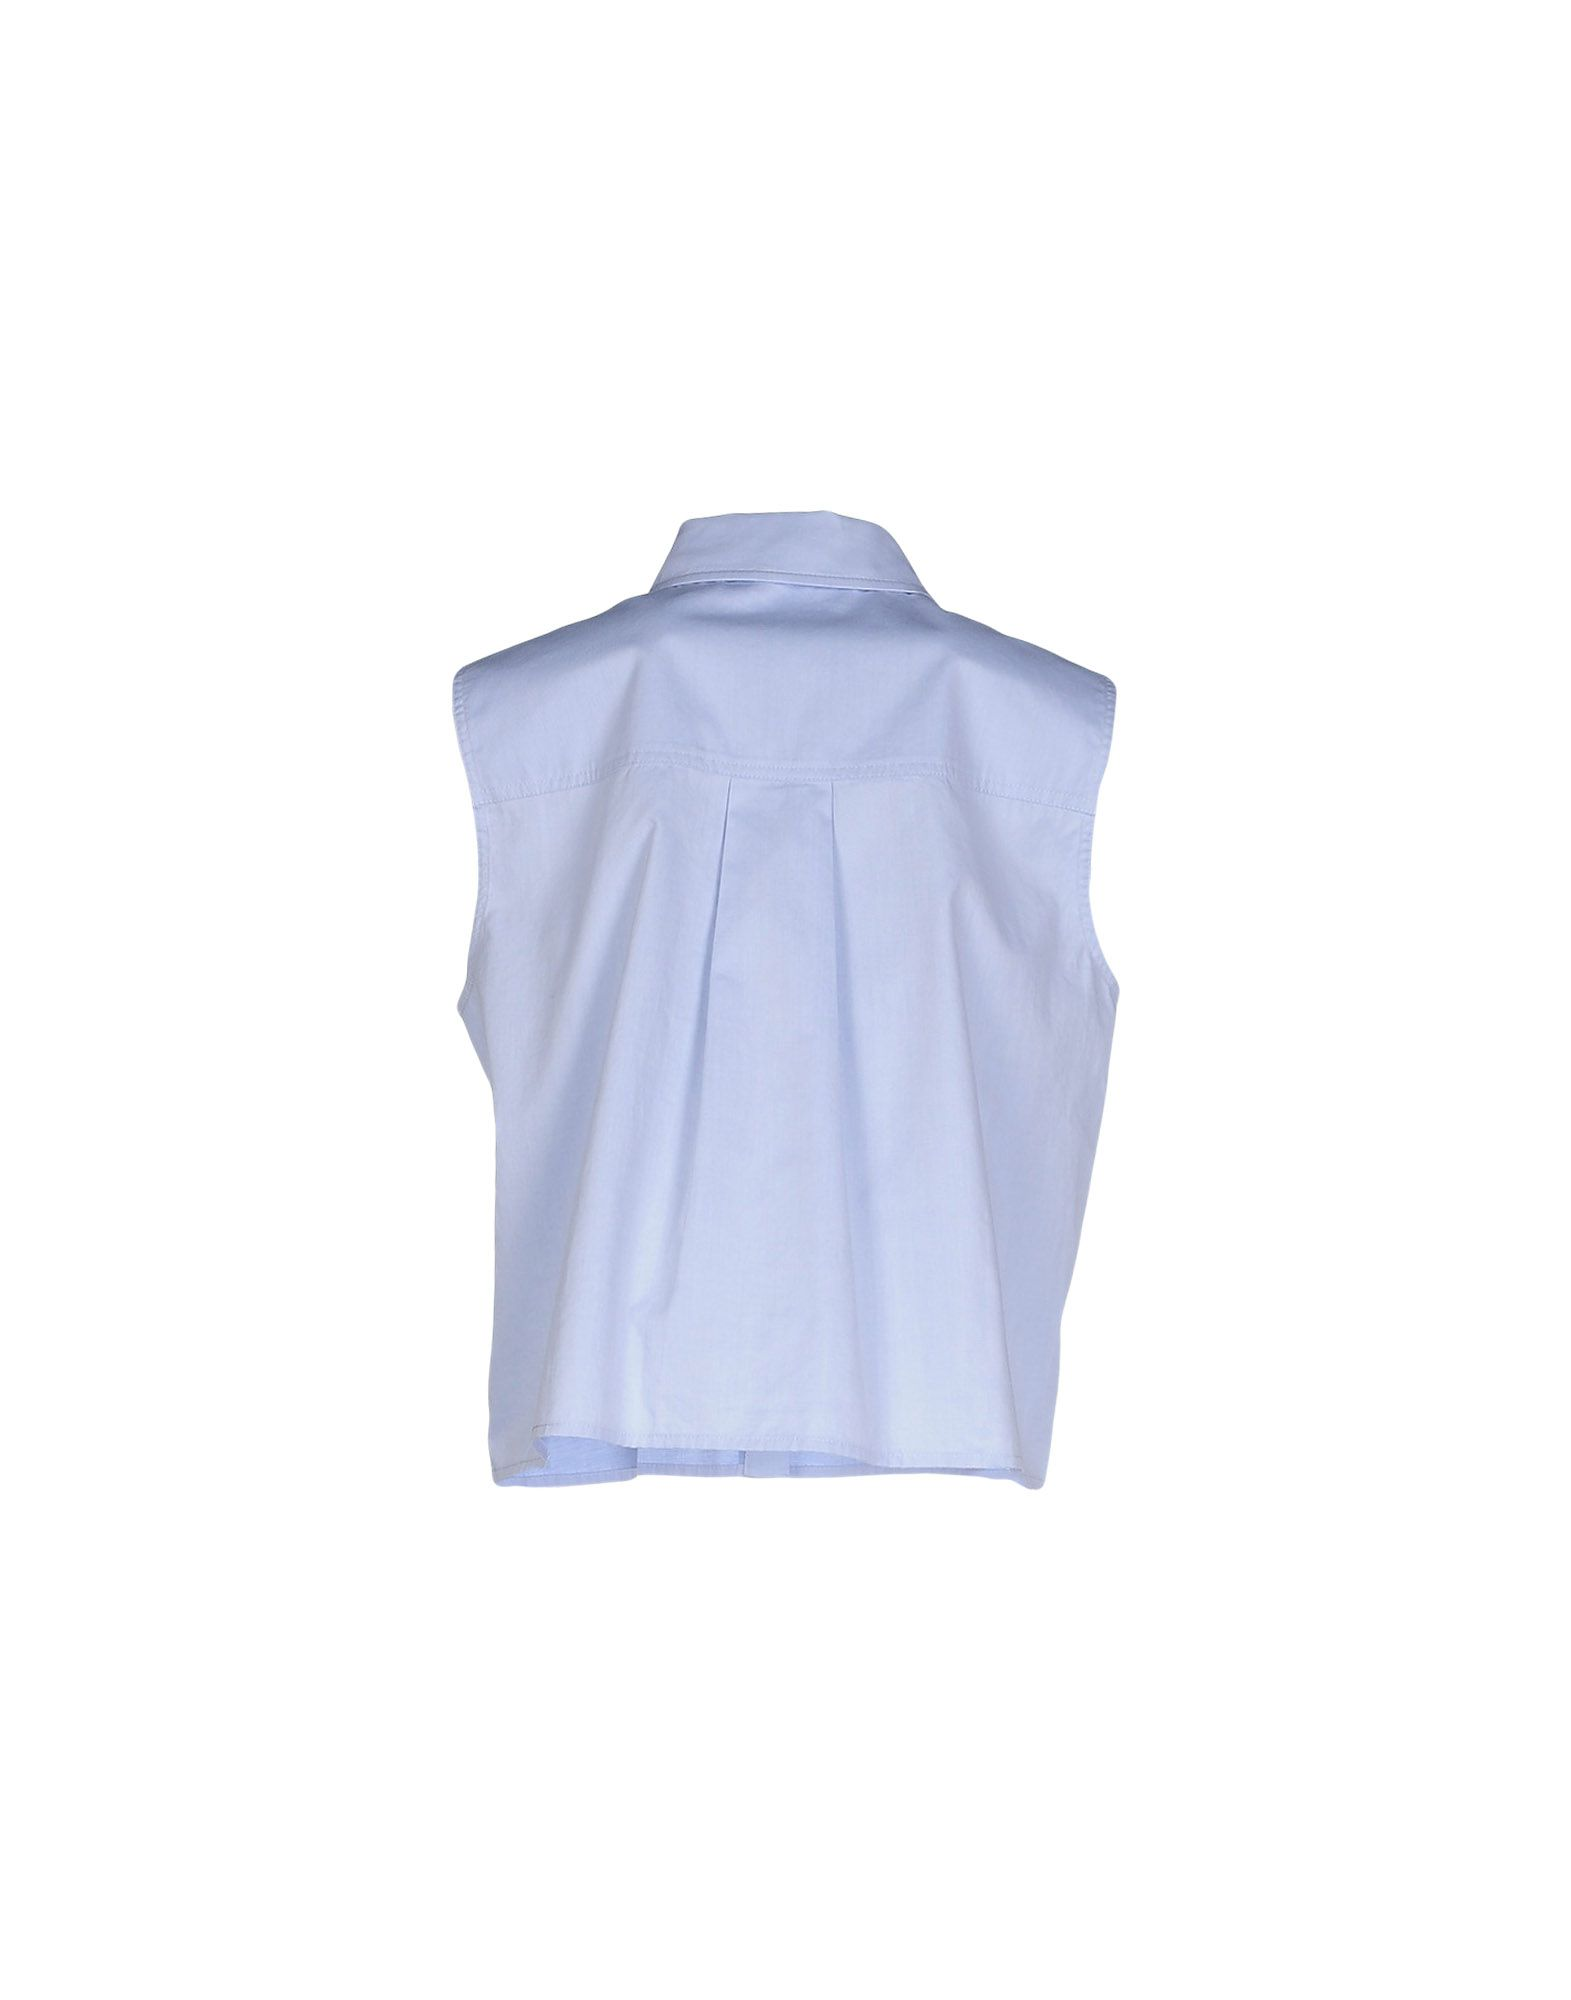 T by alexander wang blue shirt1